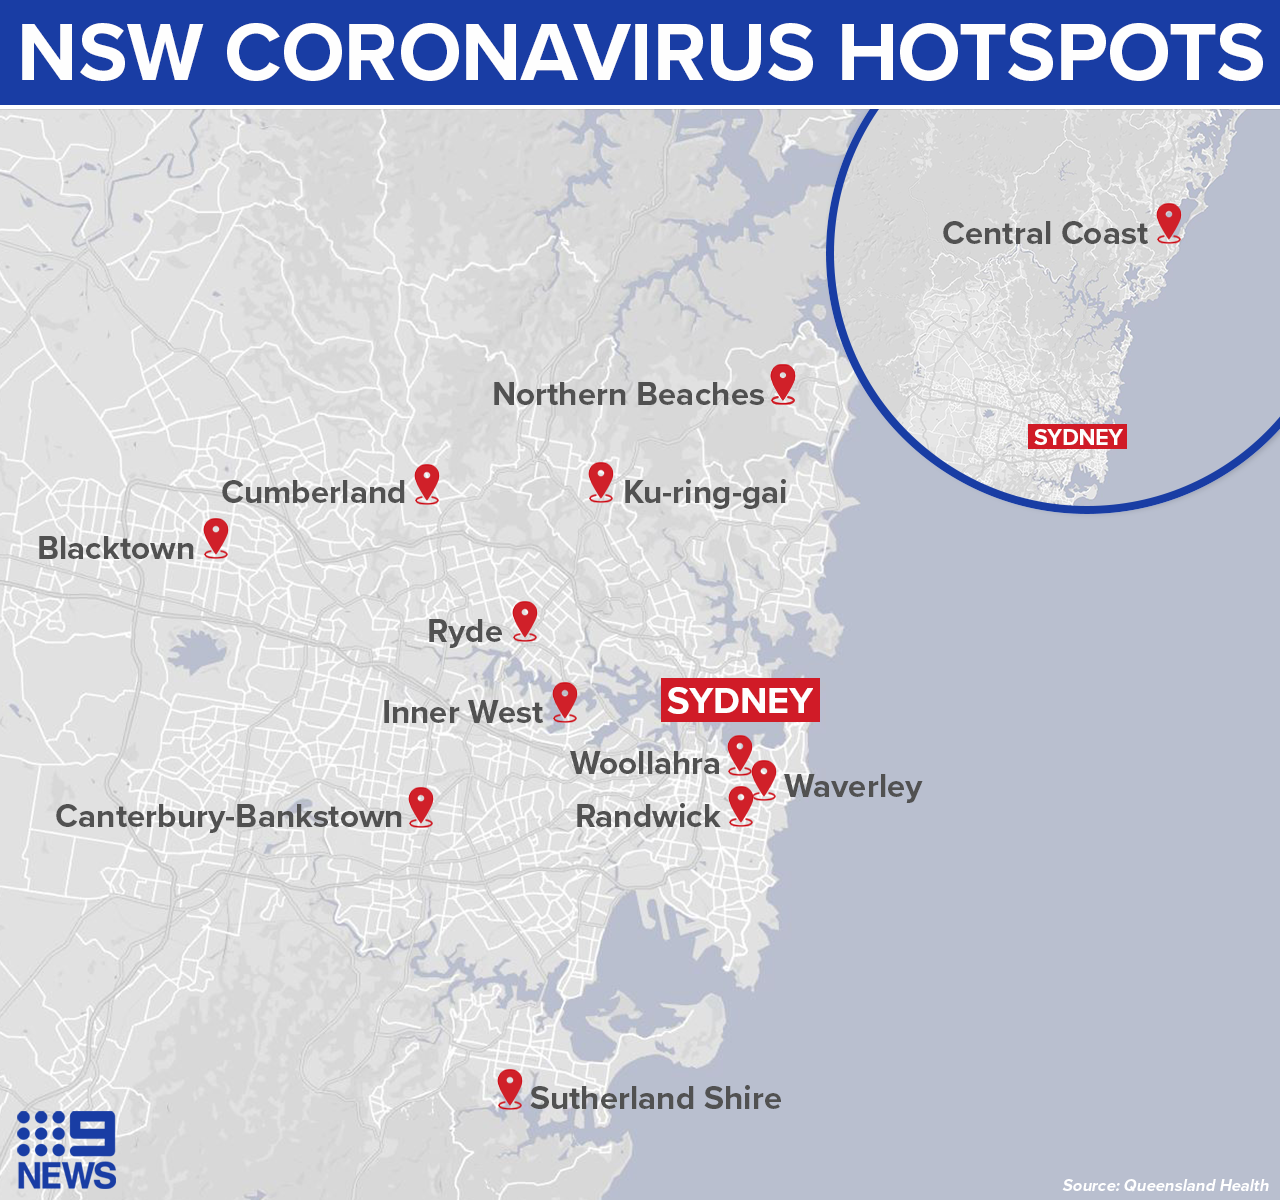 COVID-19 hotspots in NSW revealed